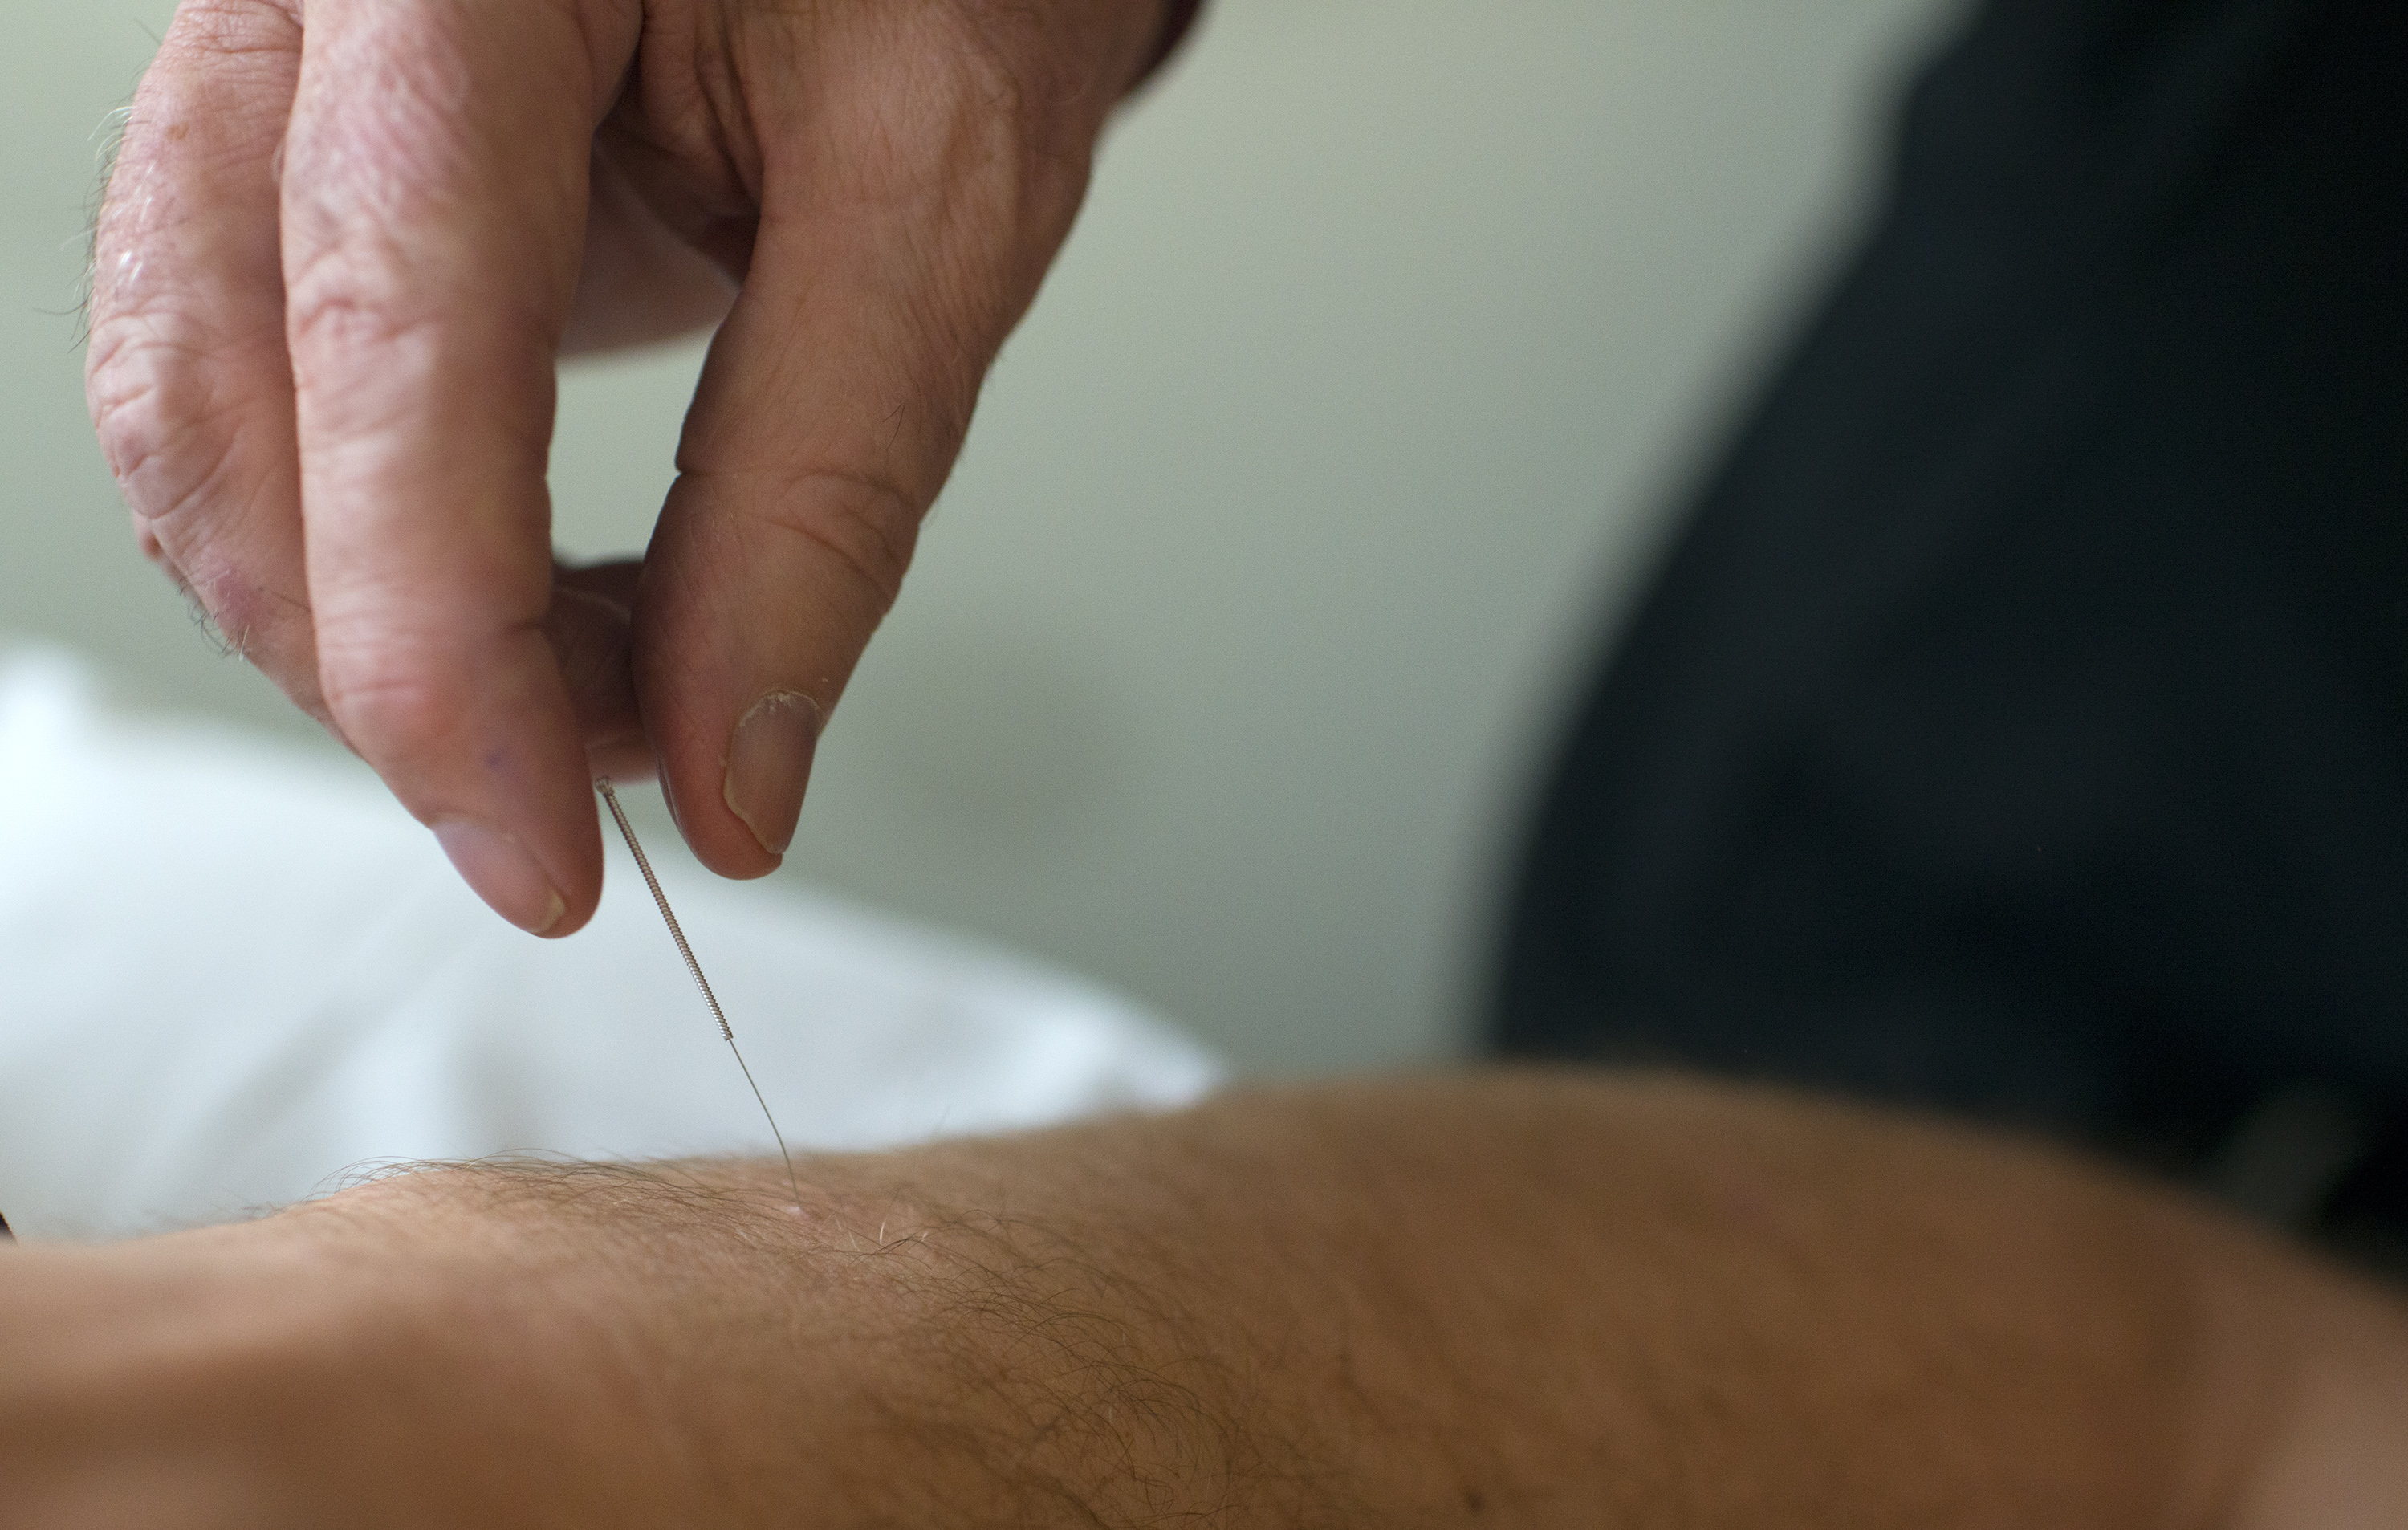 Medicare will pay for acupuncture that is part of low back pain research - The Washington Post